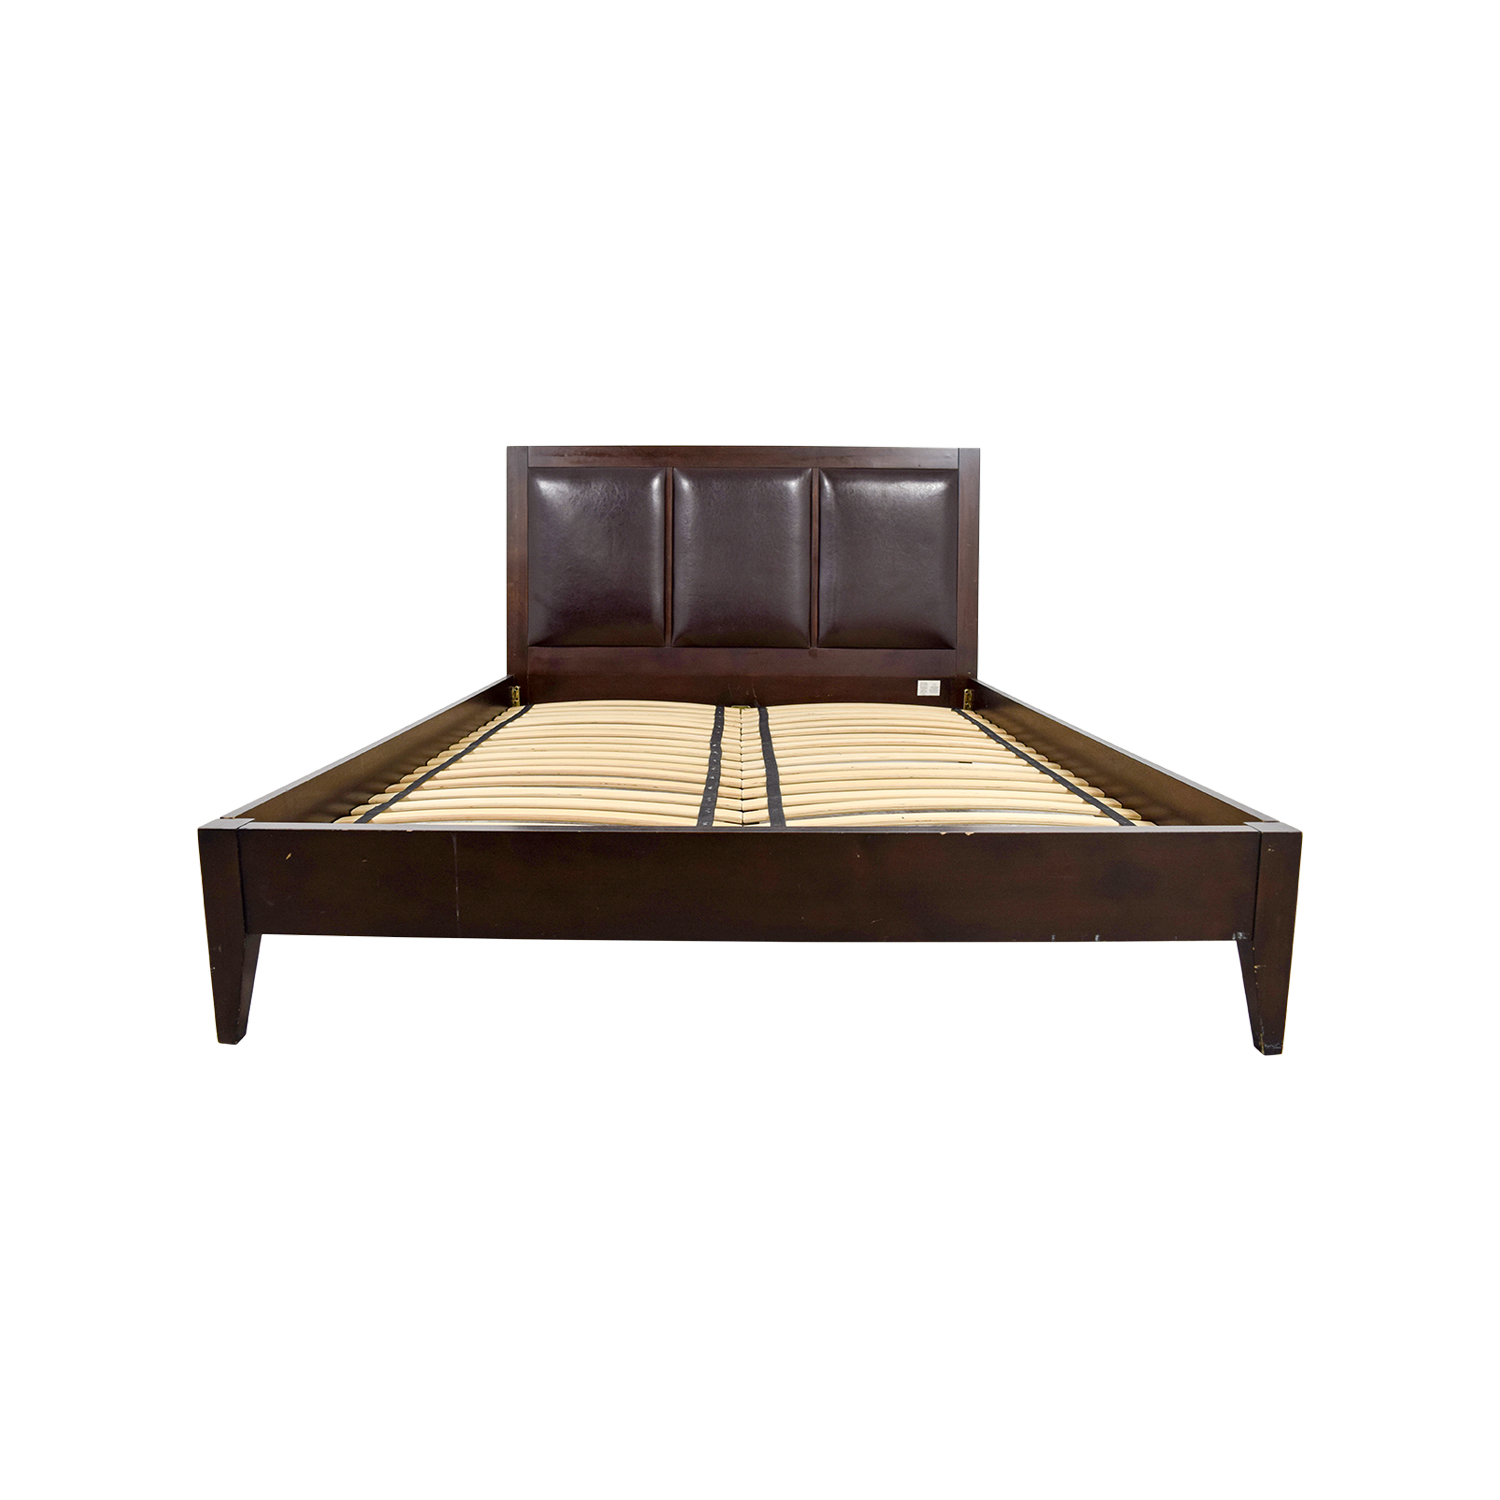 Crate & Barrel Crate & Barrel Brown Leather Queen Bed Frame dimensions